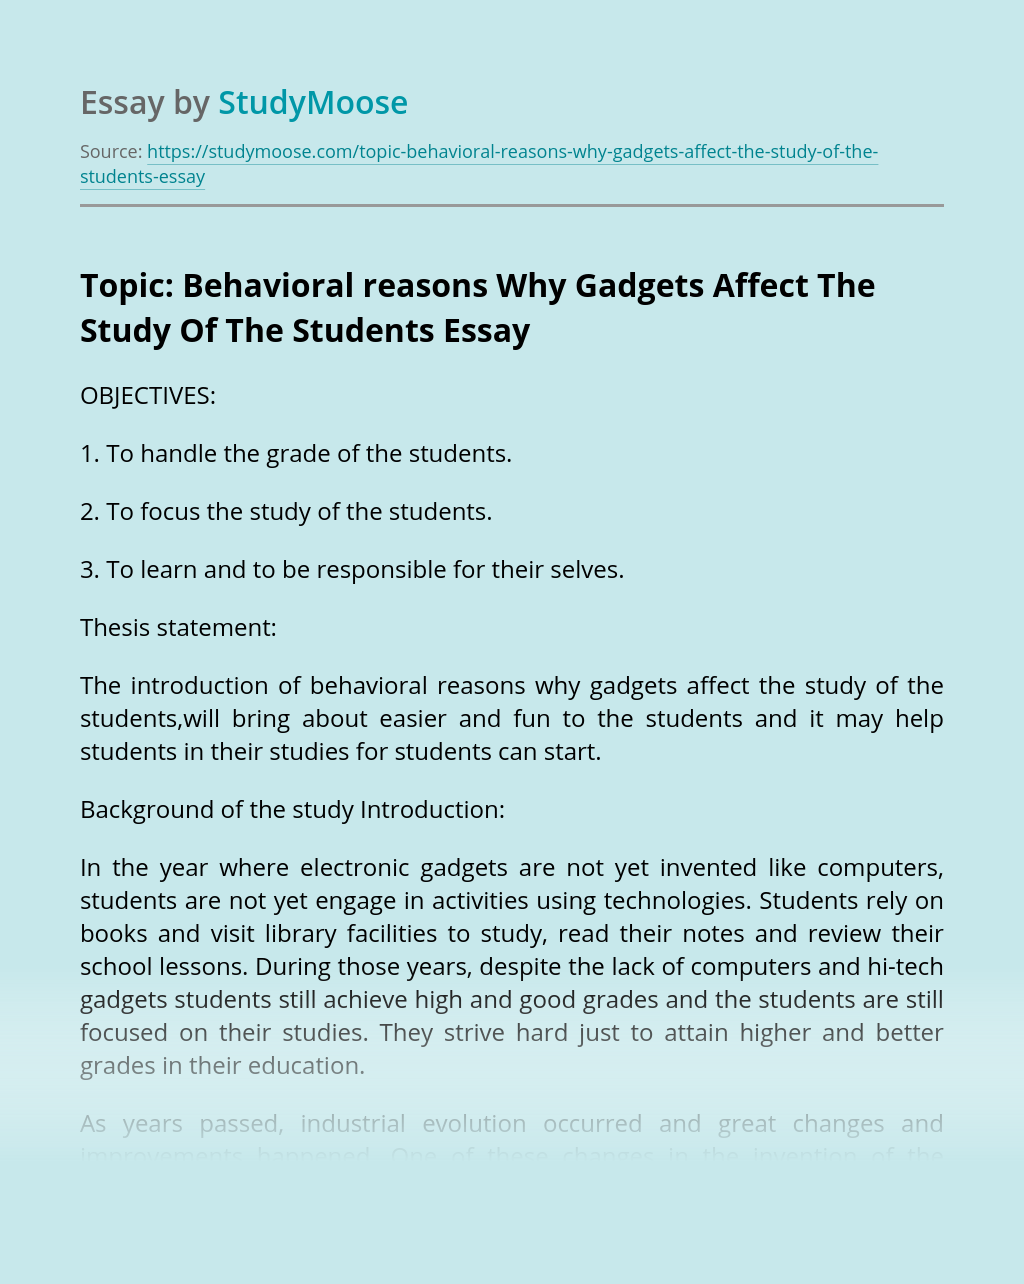 Topic: Behavioral reasons Why Gadgets Affect The Study Of The Students